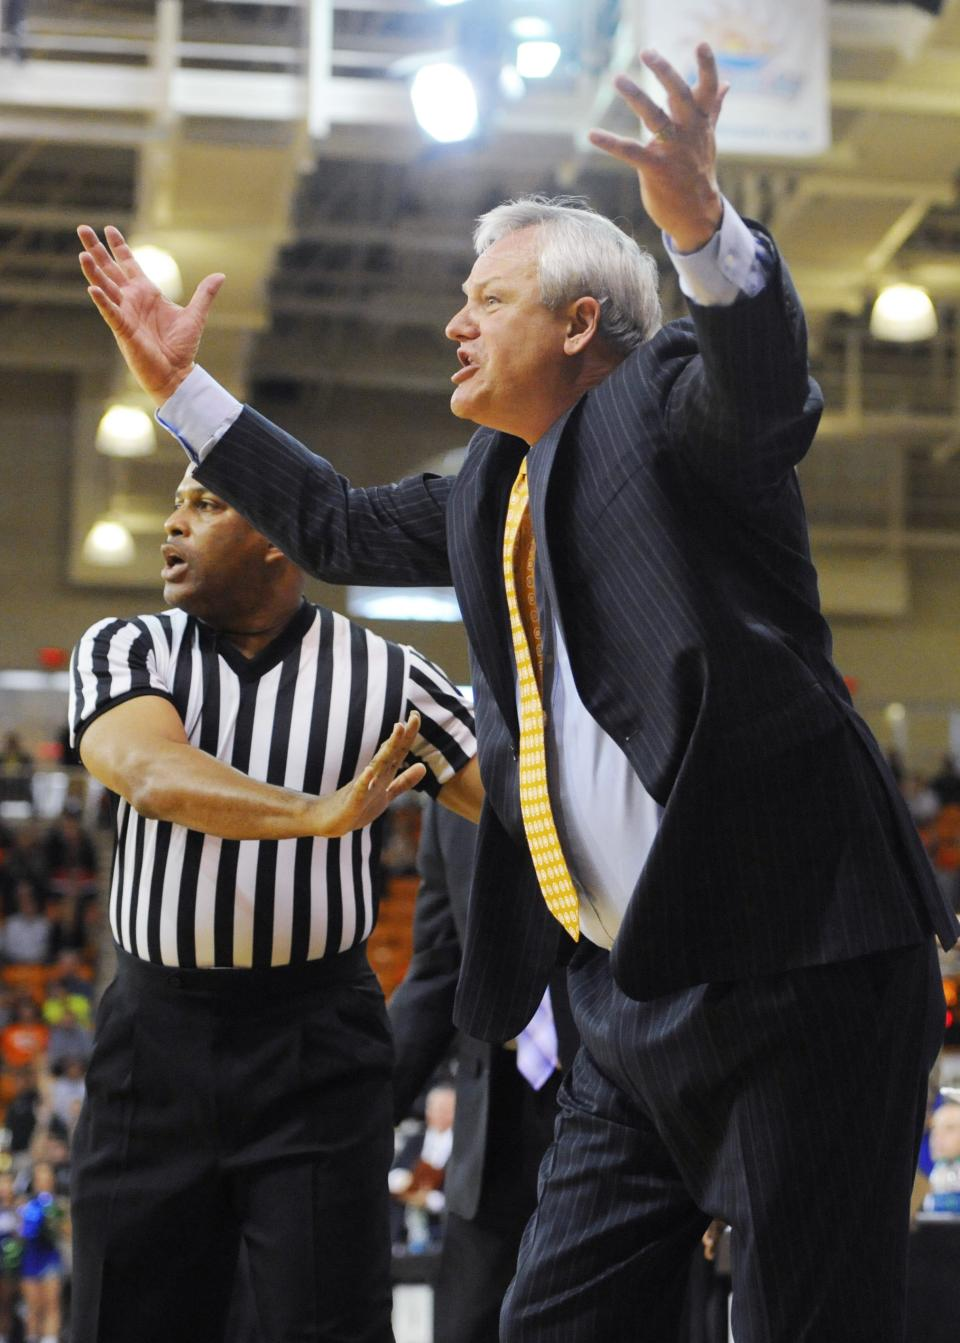 Mercer coach Bob Hoffman makes a point to the officials during an NCAA college basketball game against Florida Gulf Coast for the Atlantic Sun men's tournament championship, in Macon, Ga., Saturday, March 9, 2013. Florida Gulf Coast won 88-75. (AP Photo/Woody Marshall)